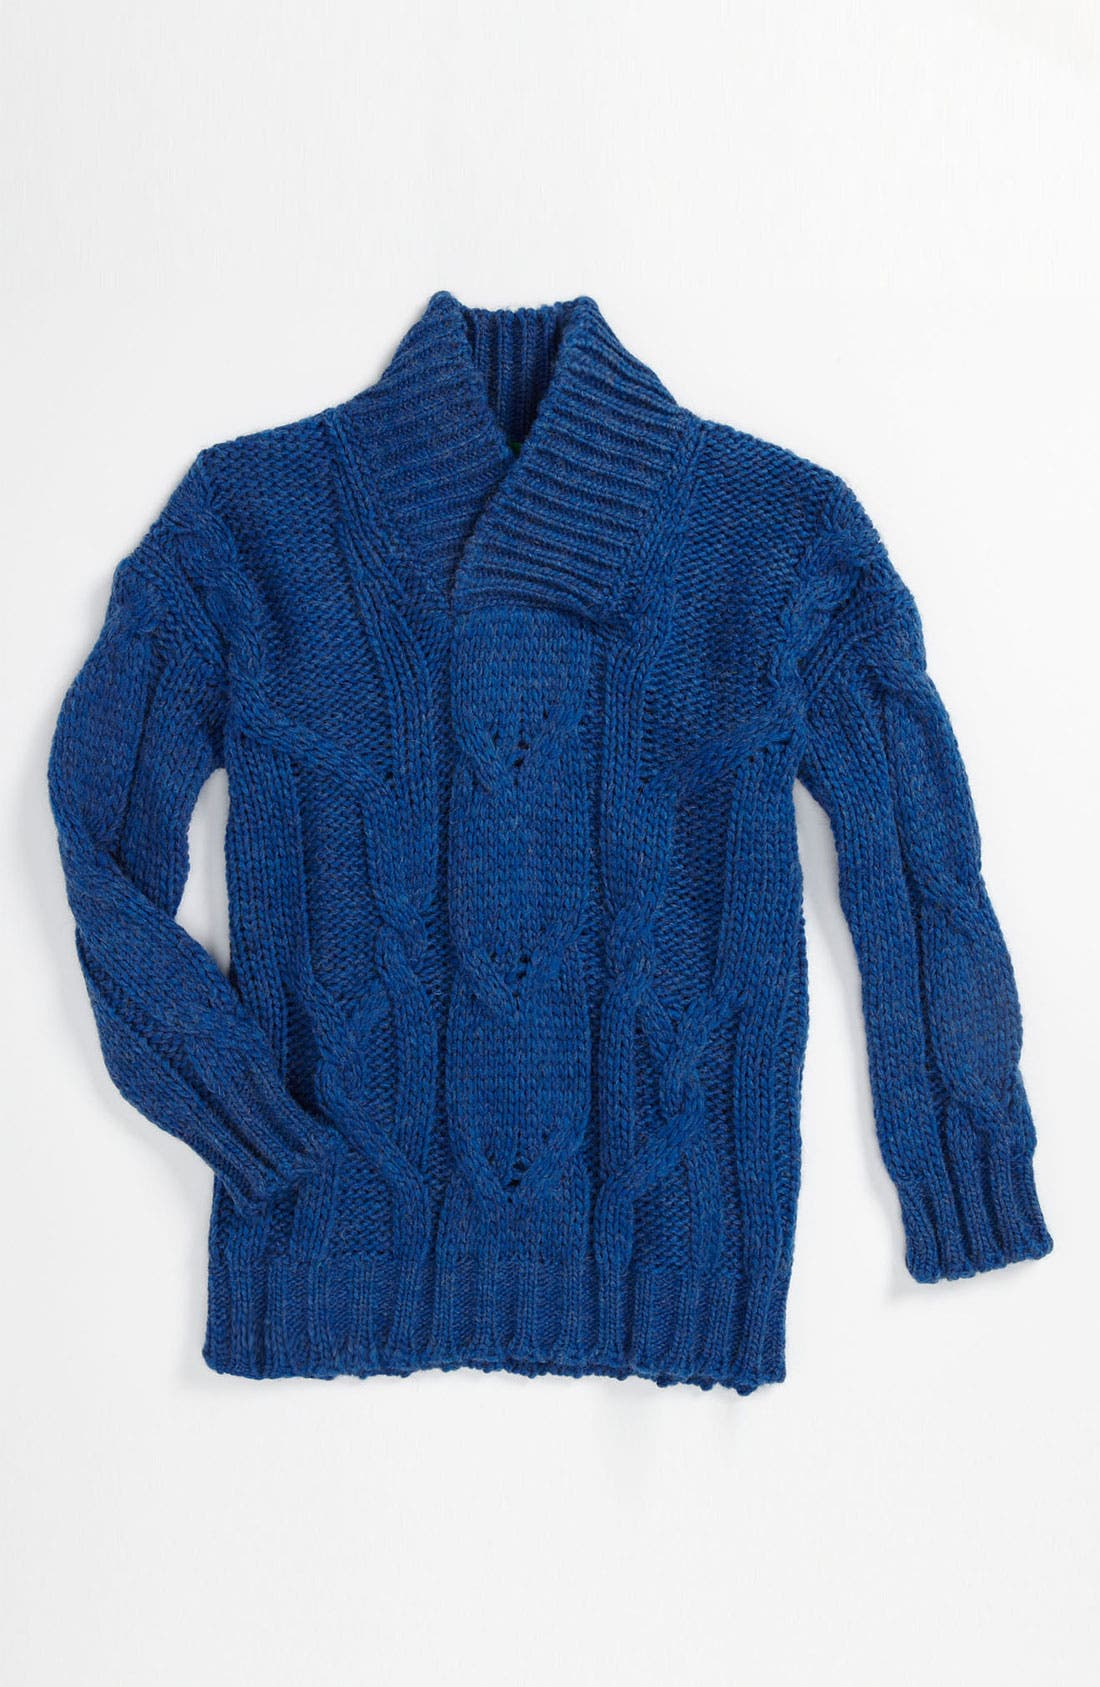 Alternate Image 1 Selected - United Colors of Benetton Kids Cable Knit Sweater (Little Boys & Big Boys)